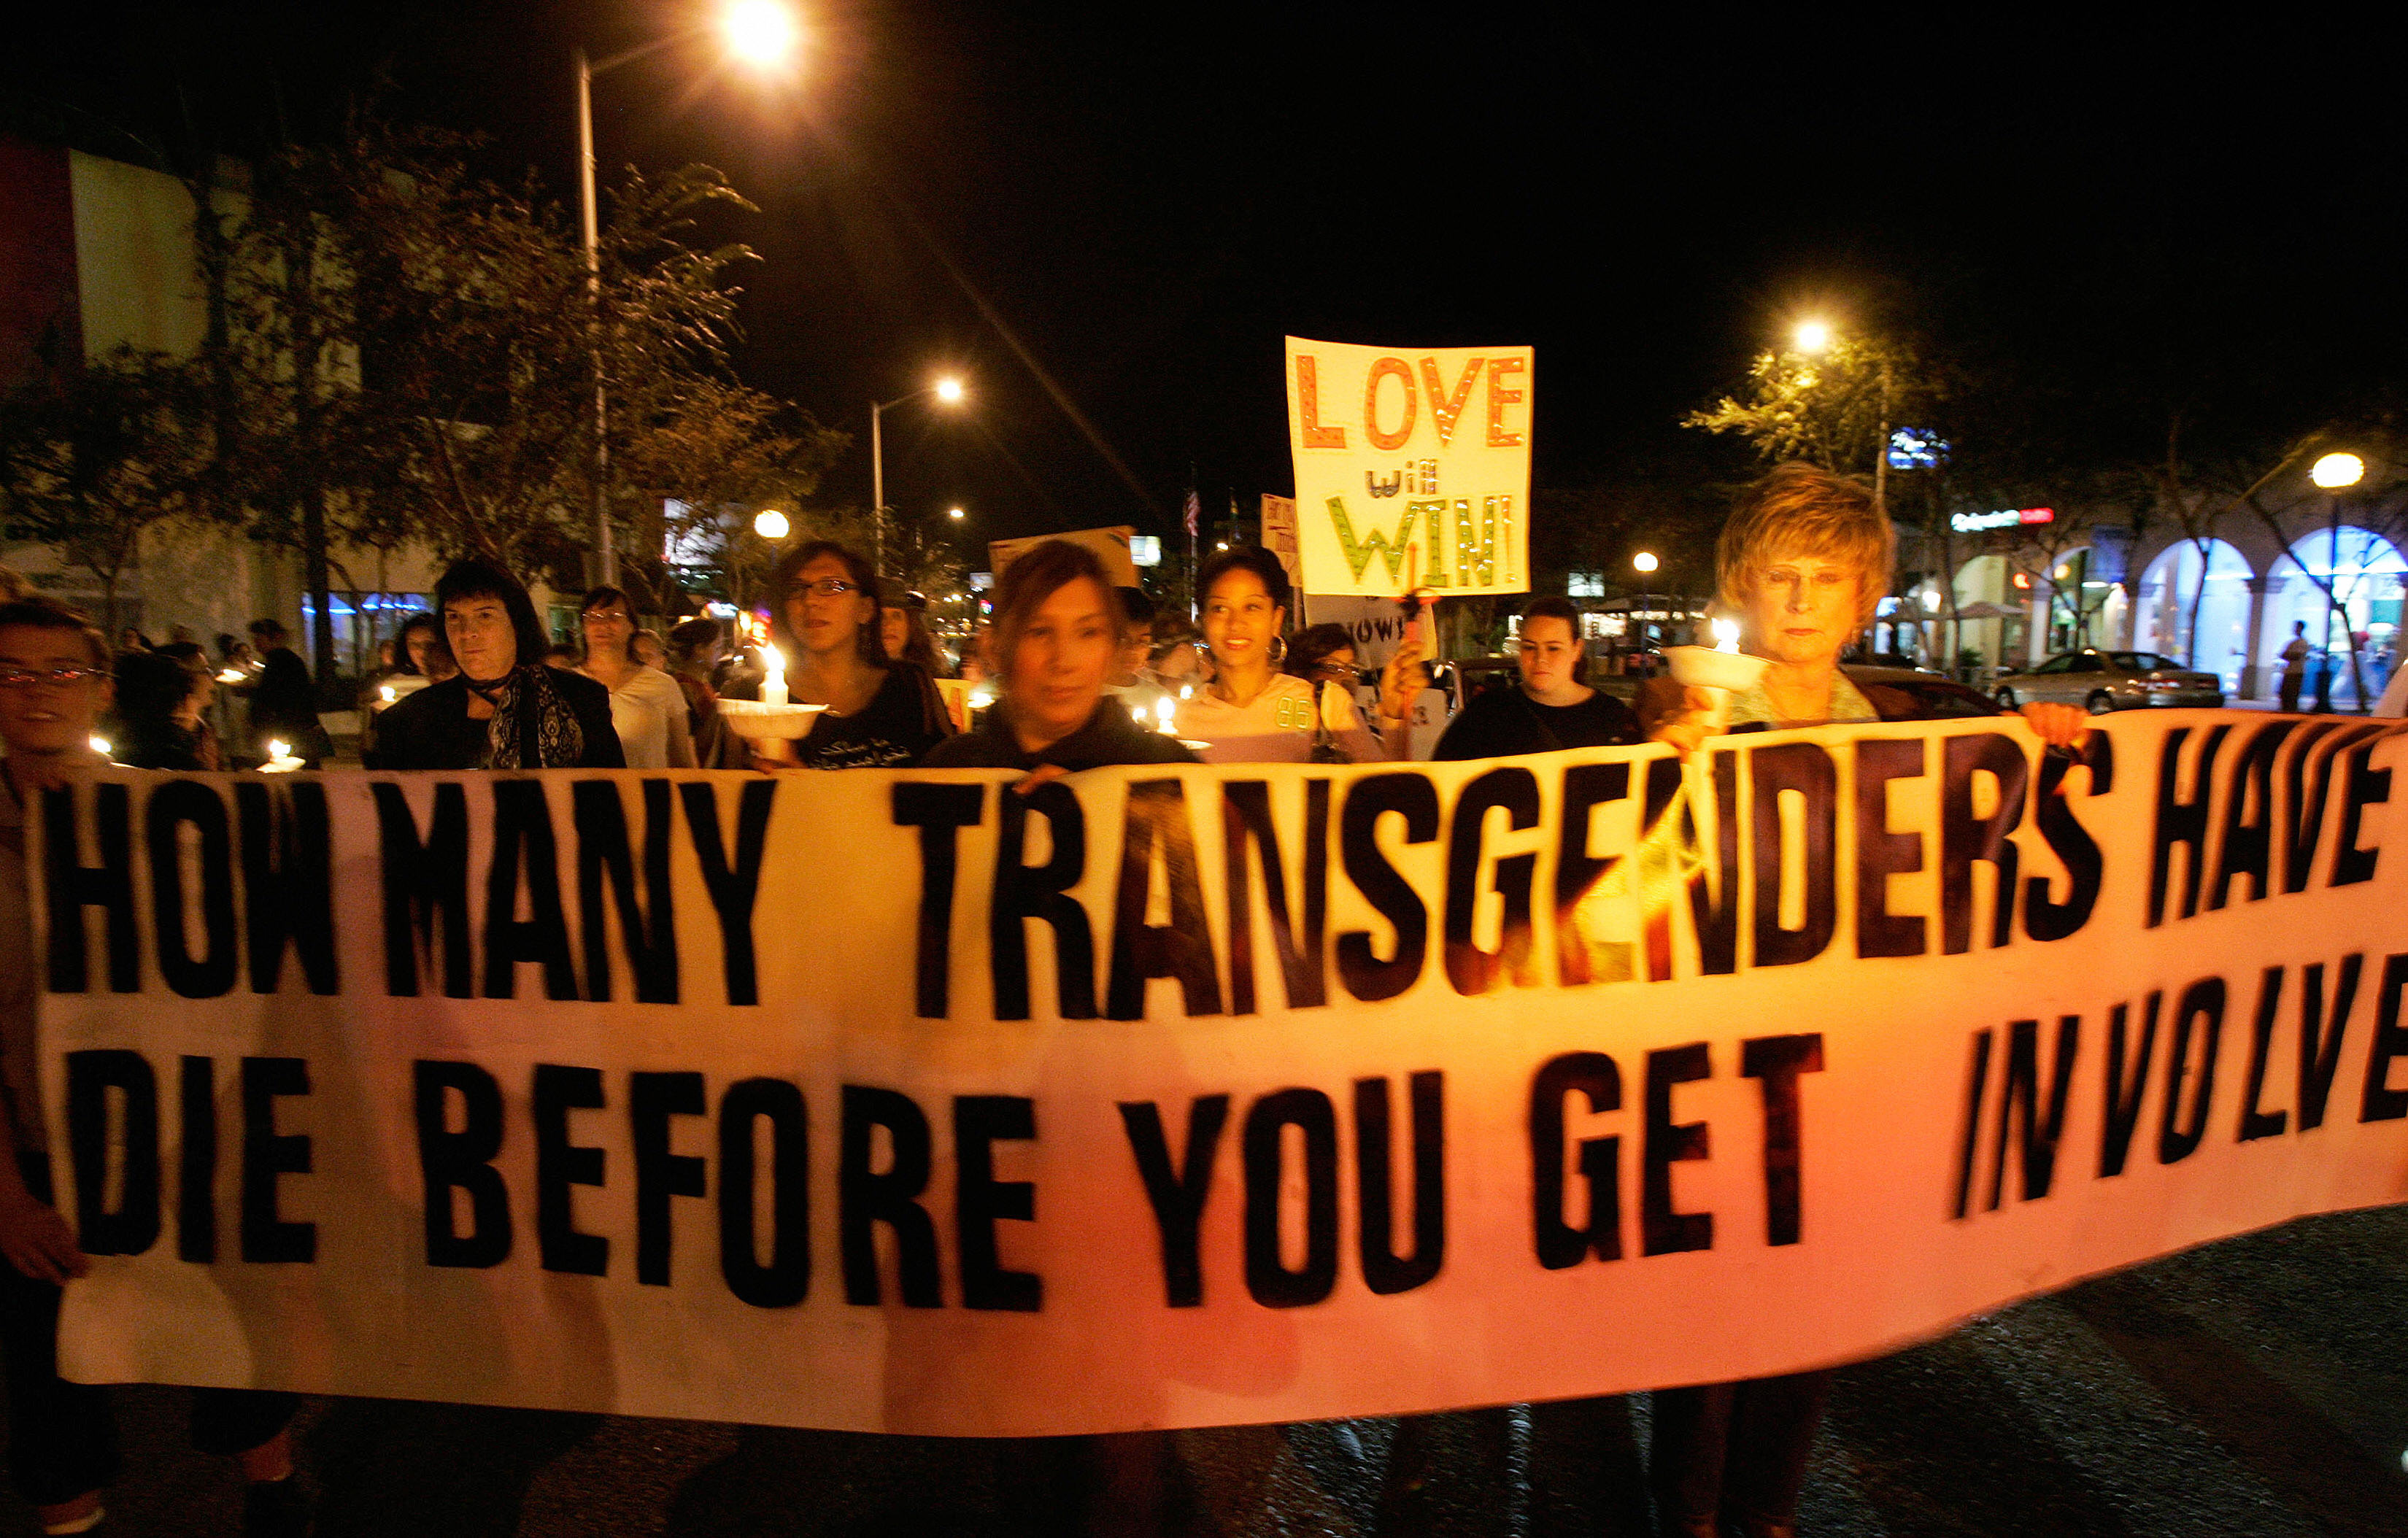 Trans people are being murdered at the highest rate on record, with four innocent lives taken in the space of a week